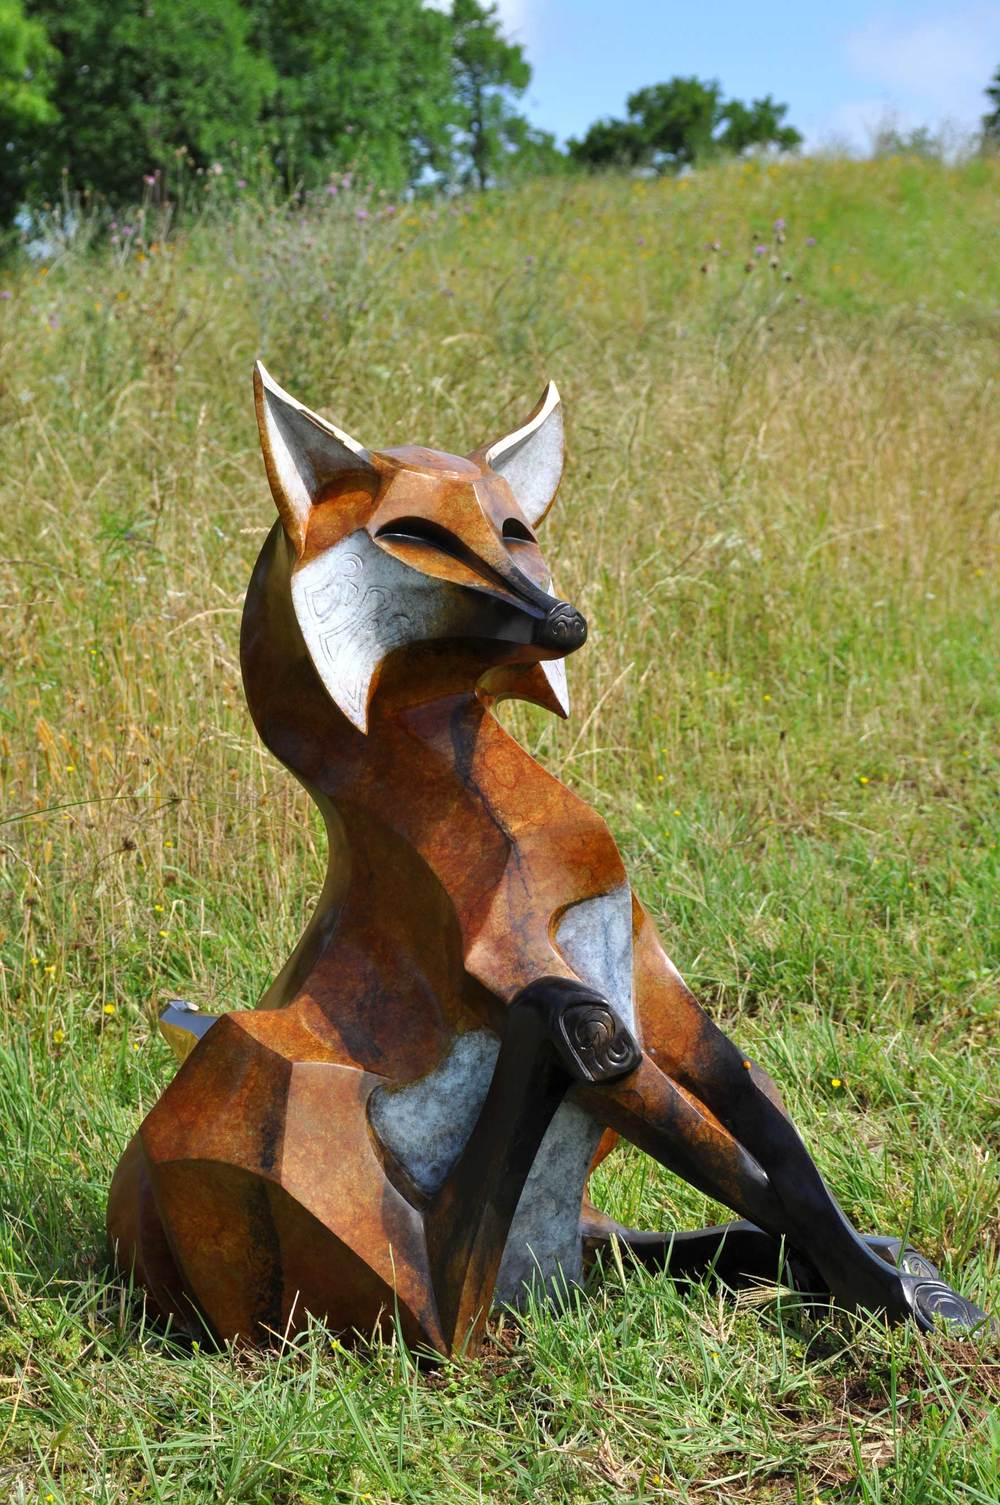 Bronze-Fox-Sculpture-Monument-by-John-Maisano---7.jpg